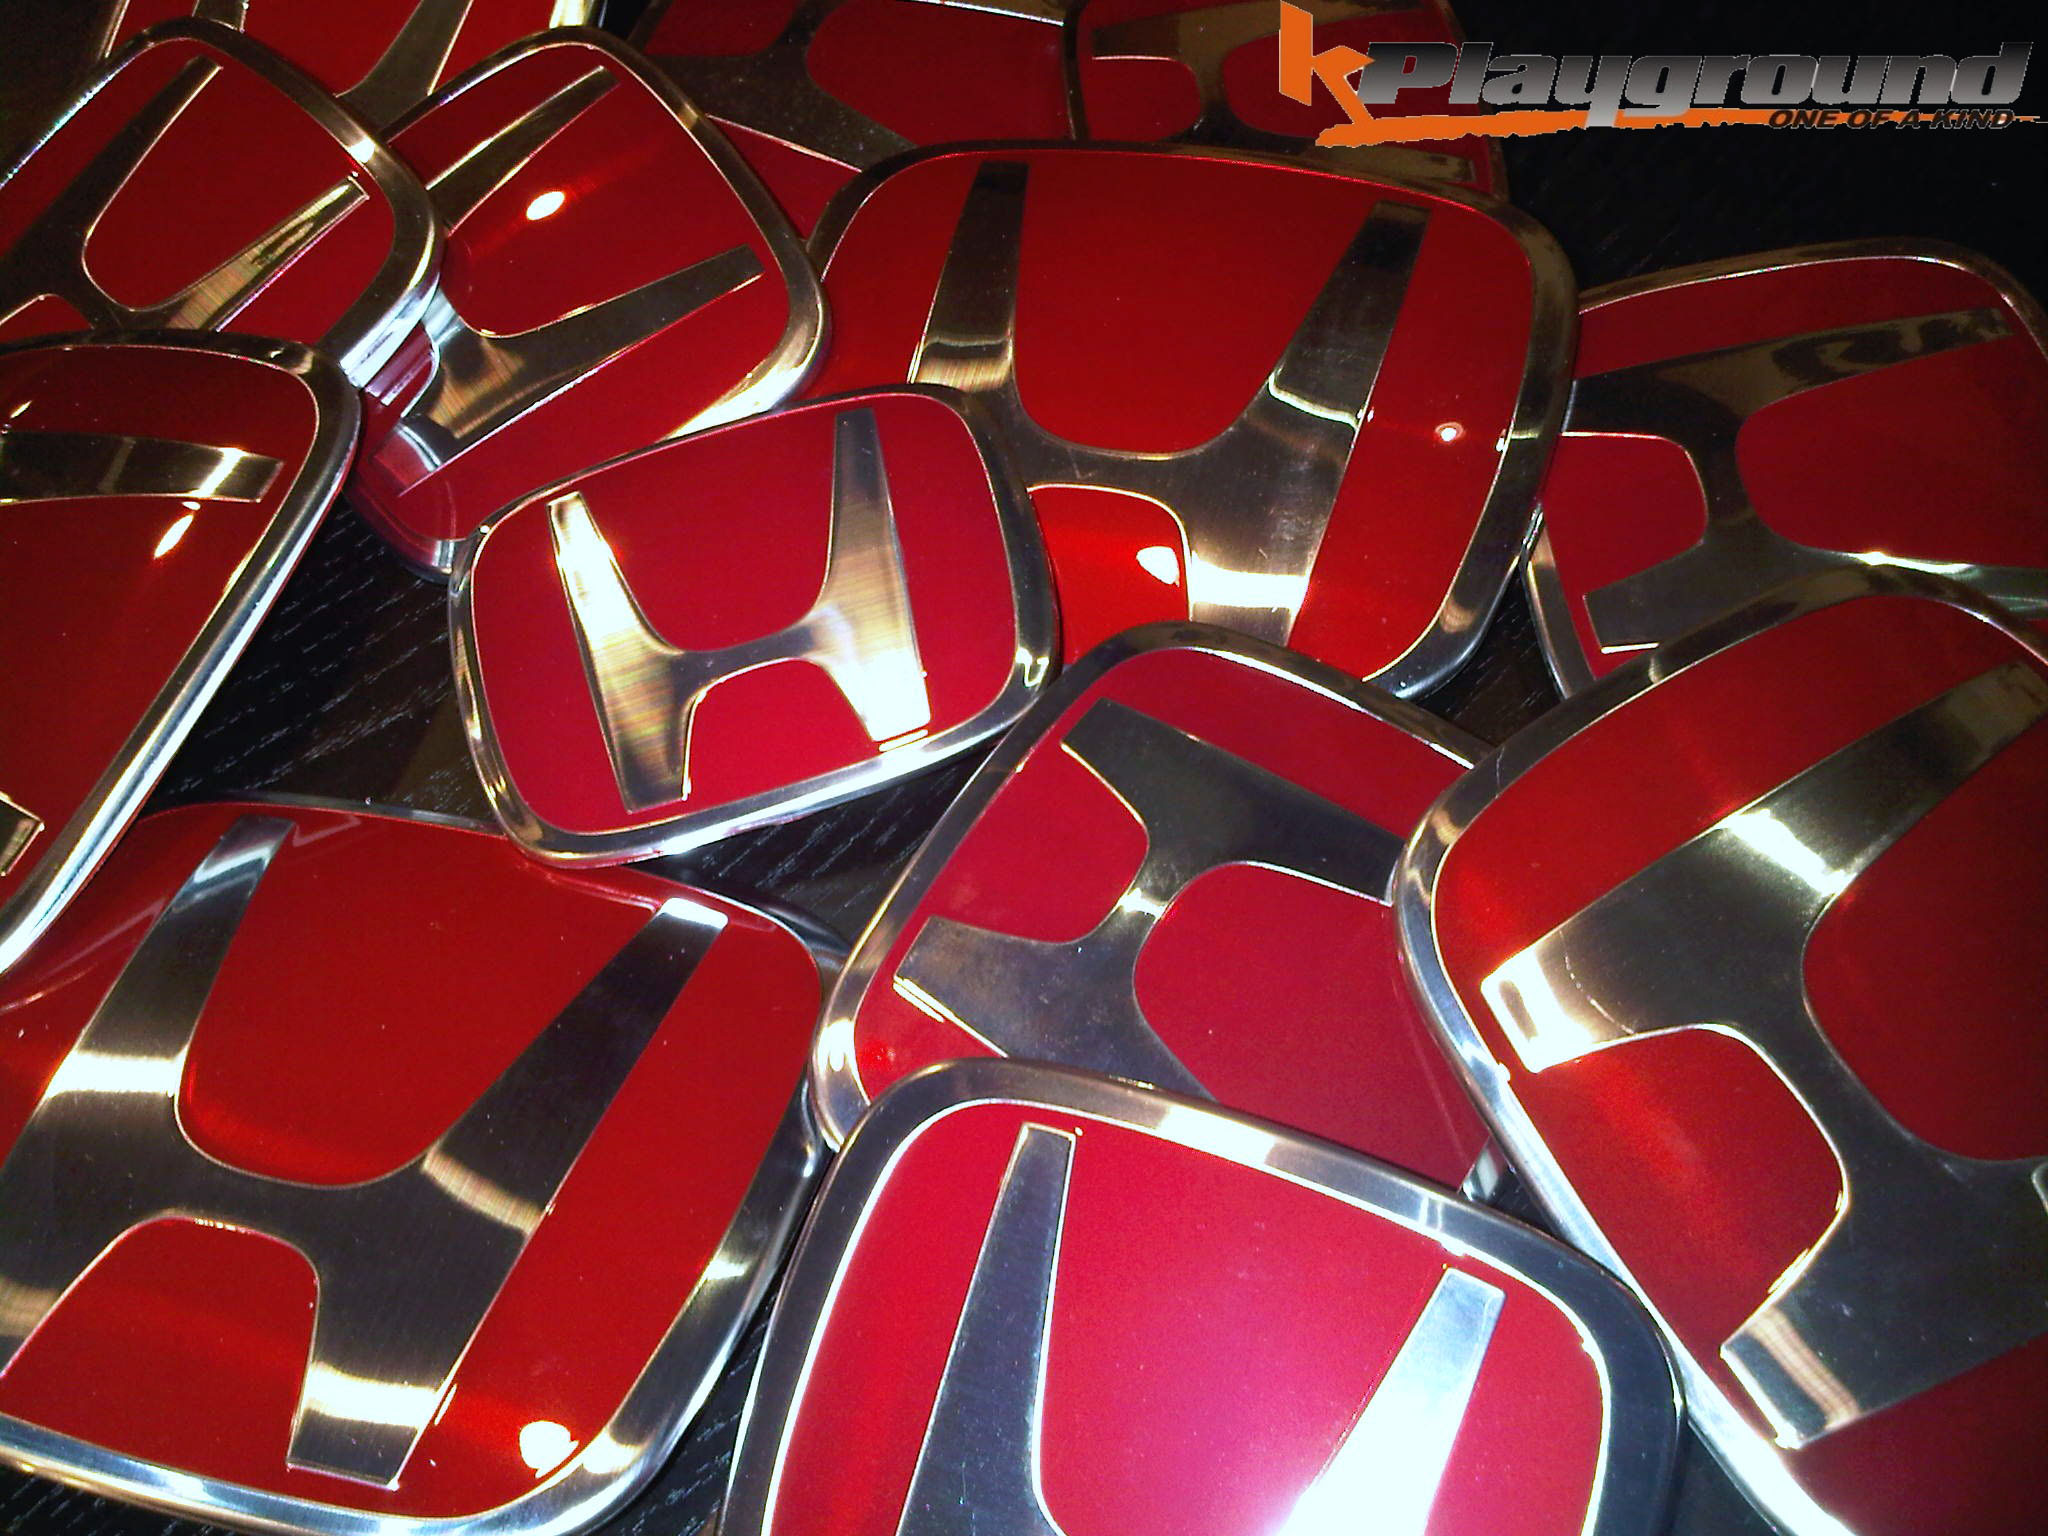 06-11 Civic Red H Rear Emblem